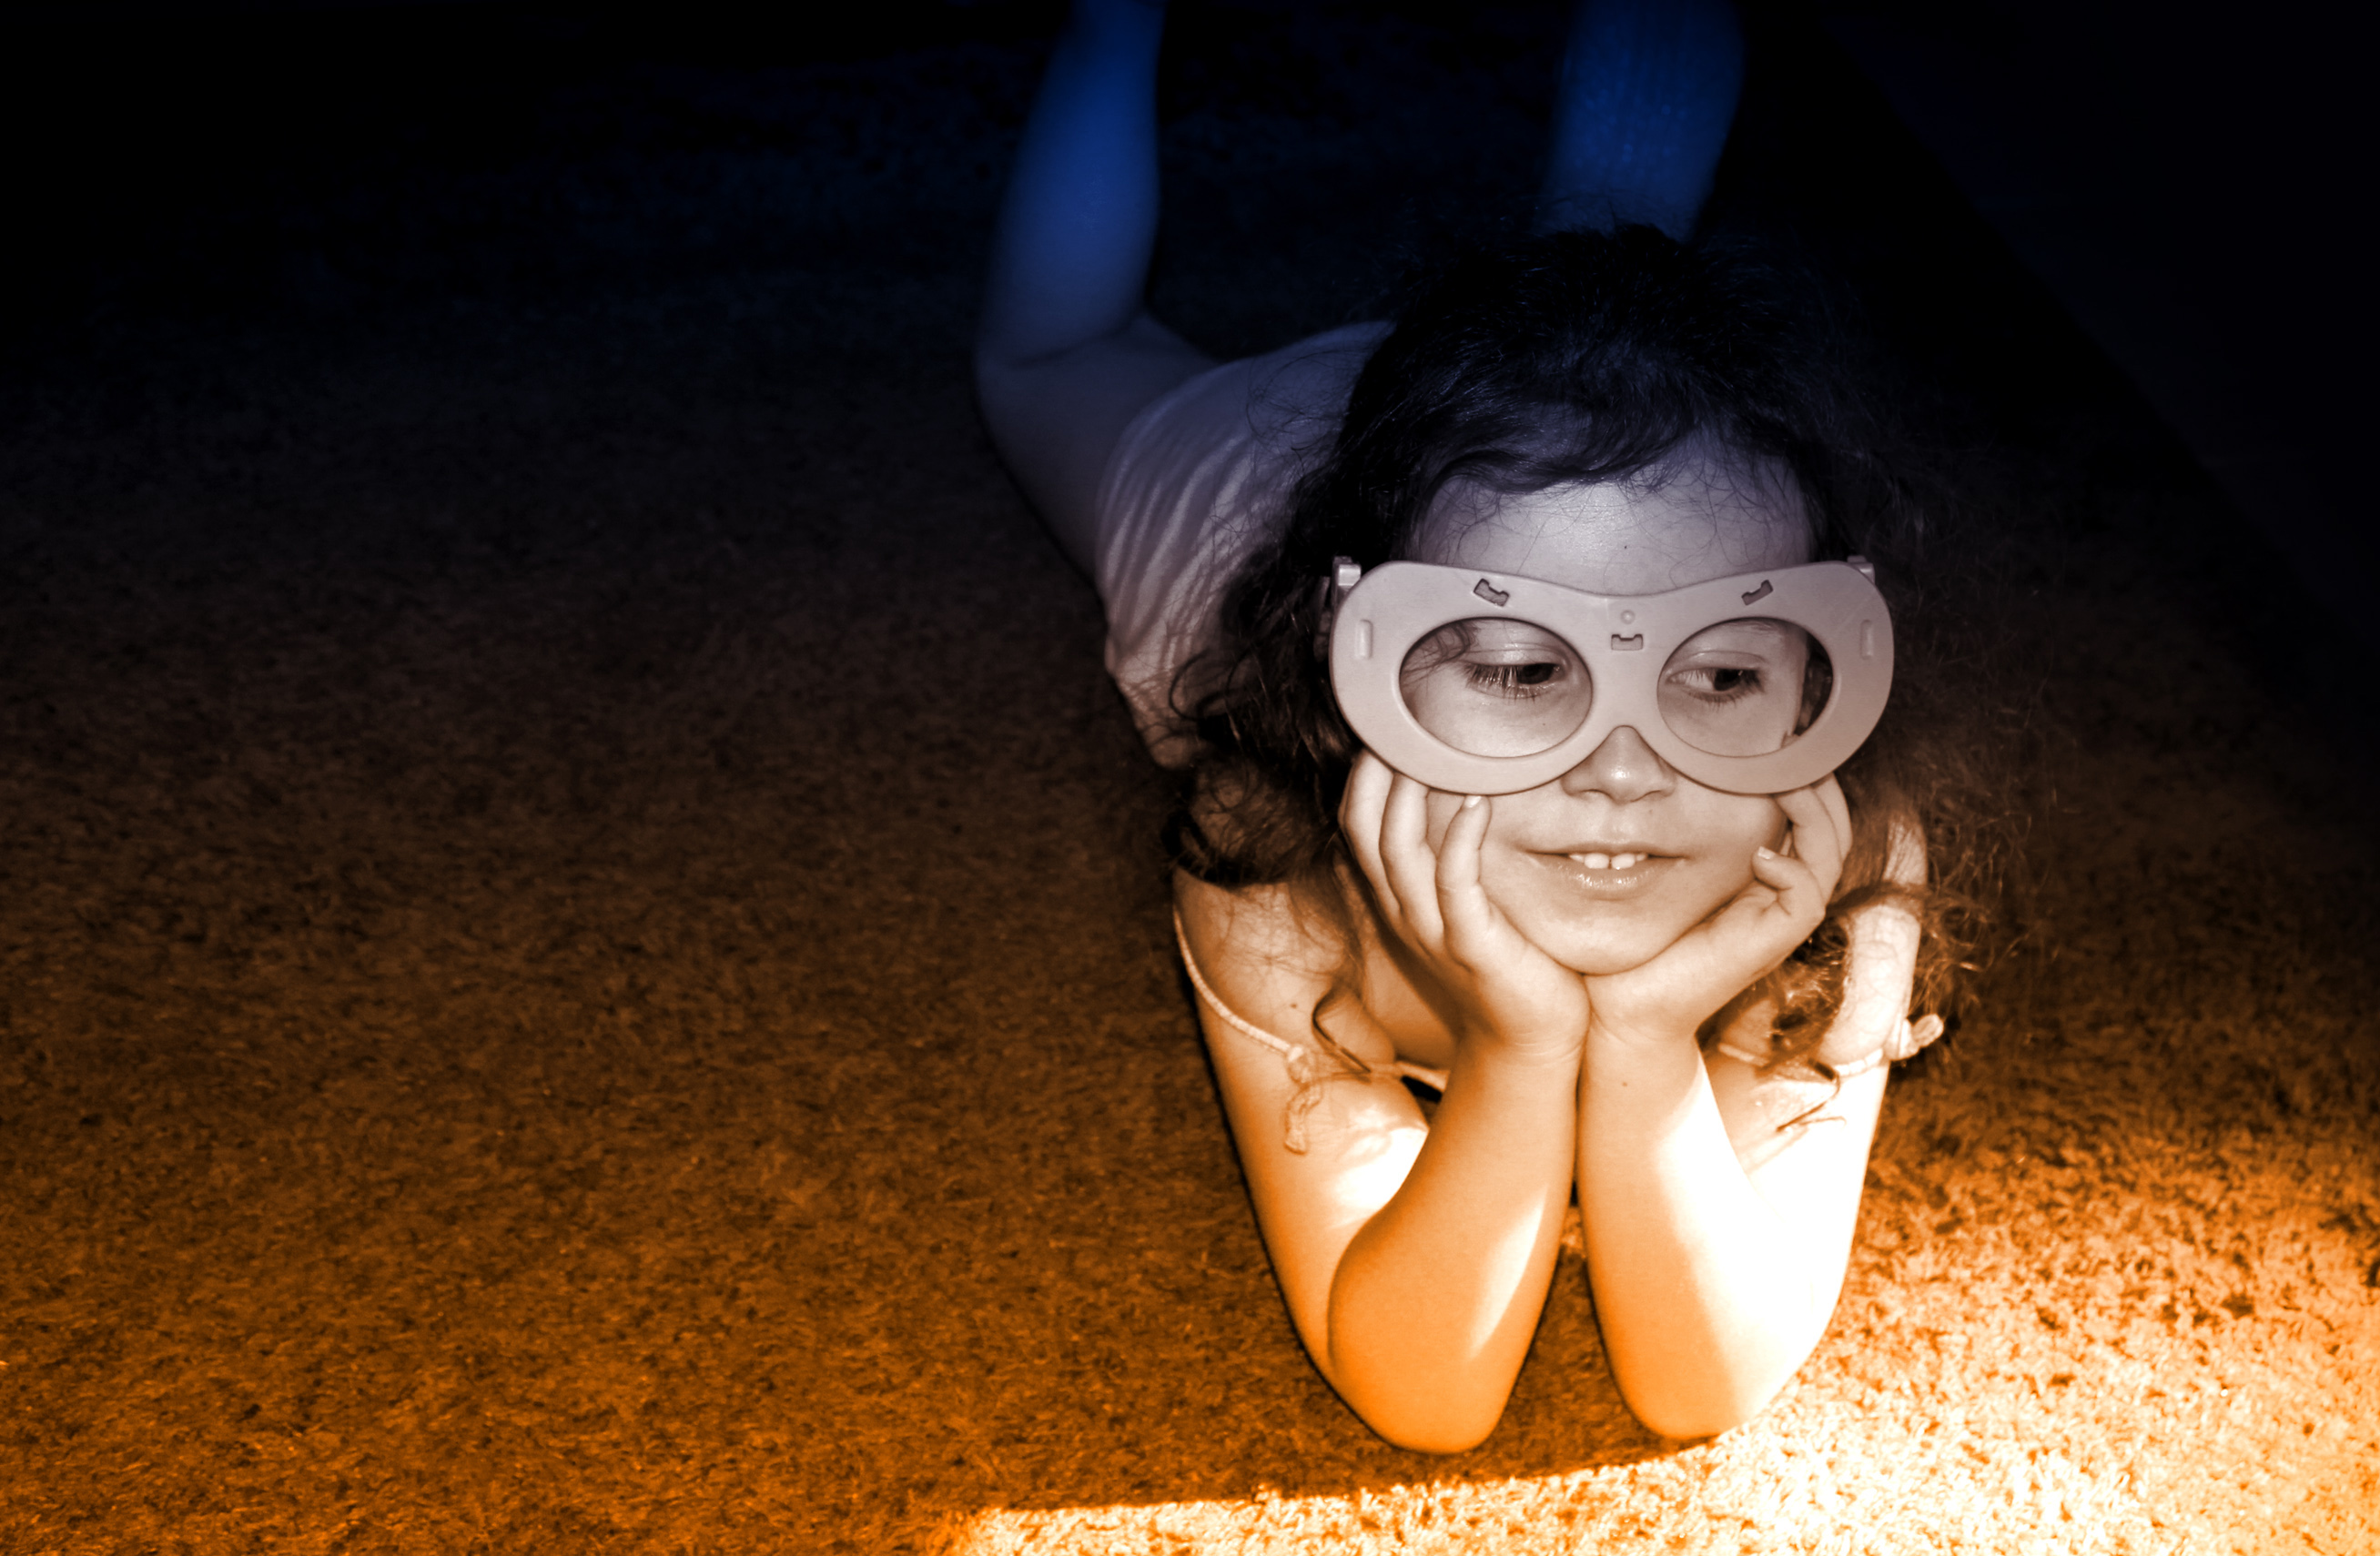 Little Girl Having Fun Wearing a Mask, Adorable, People, Kid, Leader, HQ Photo